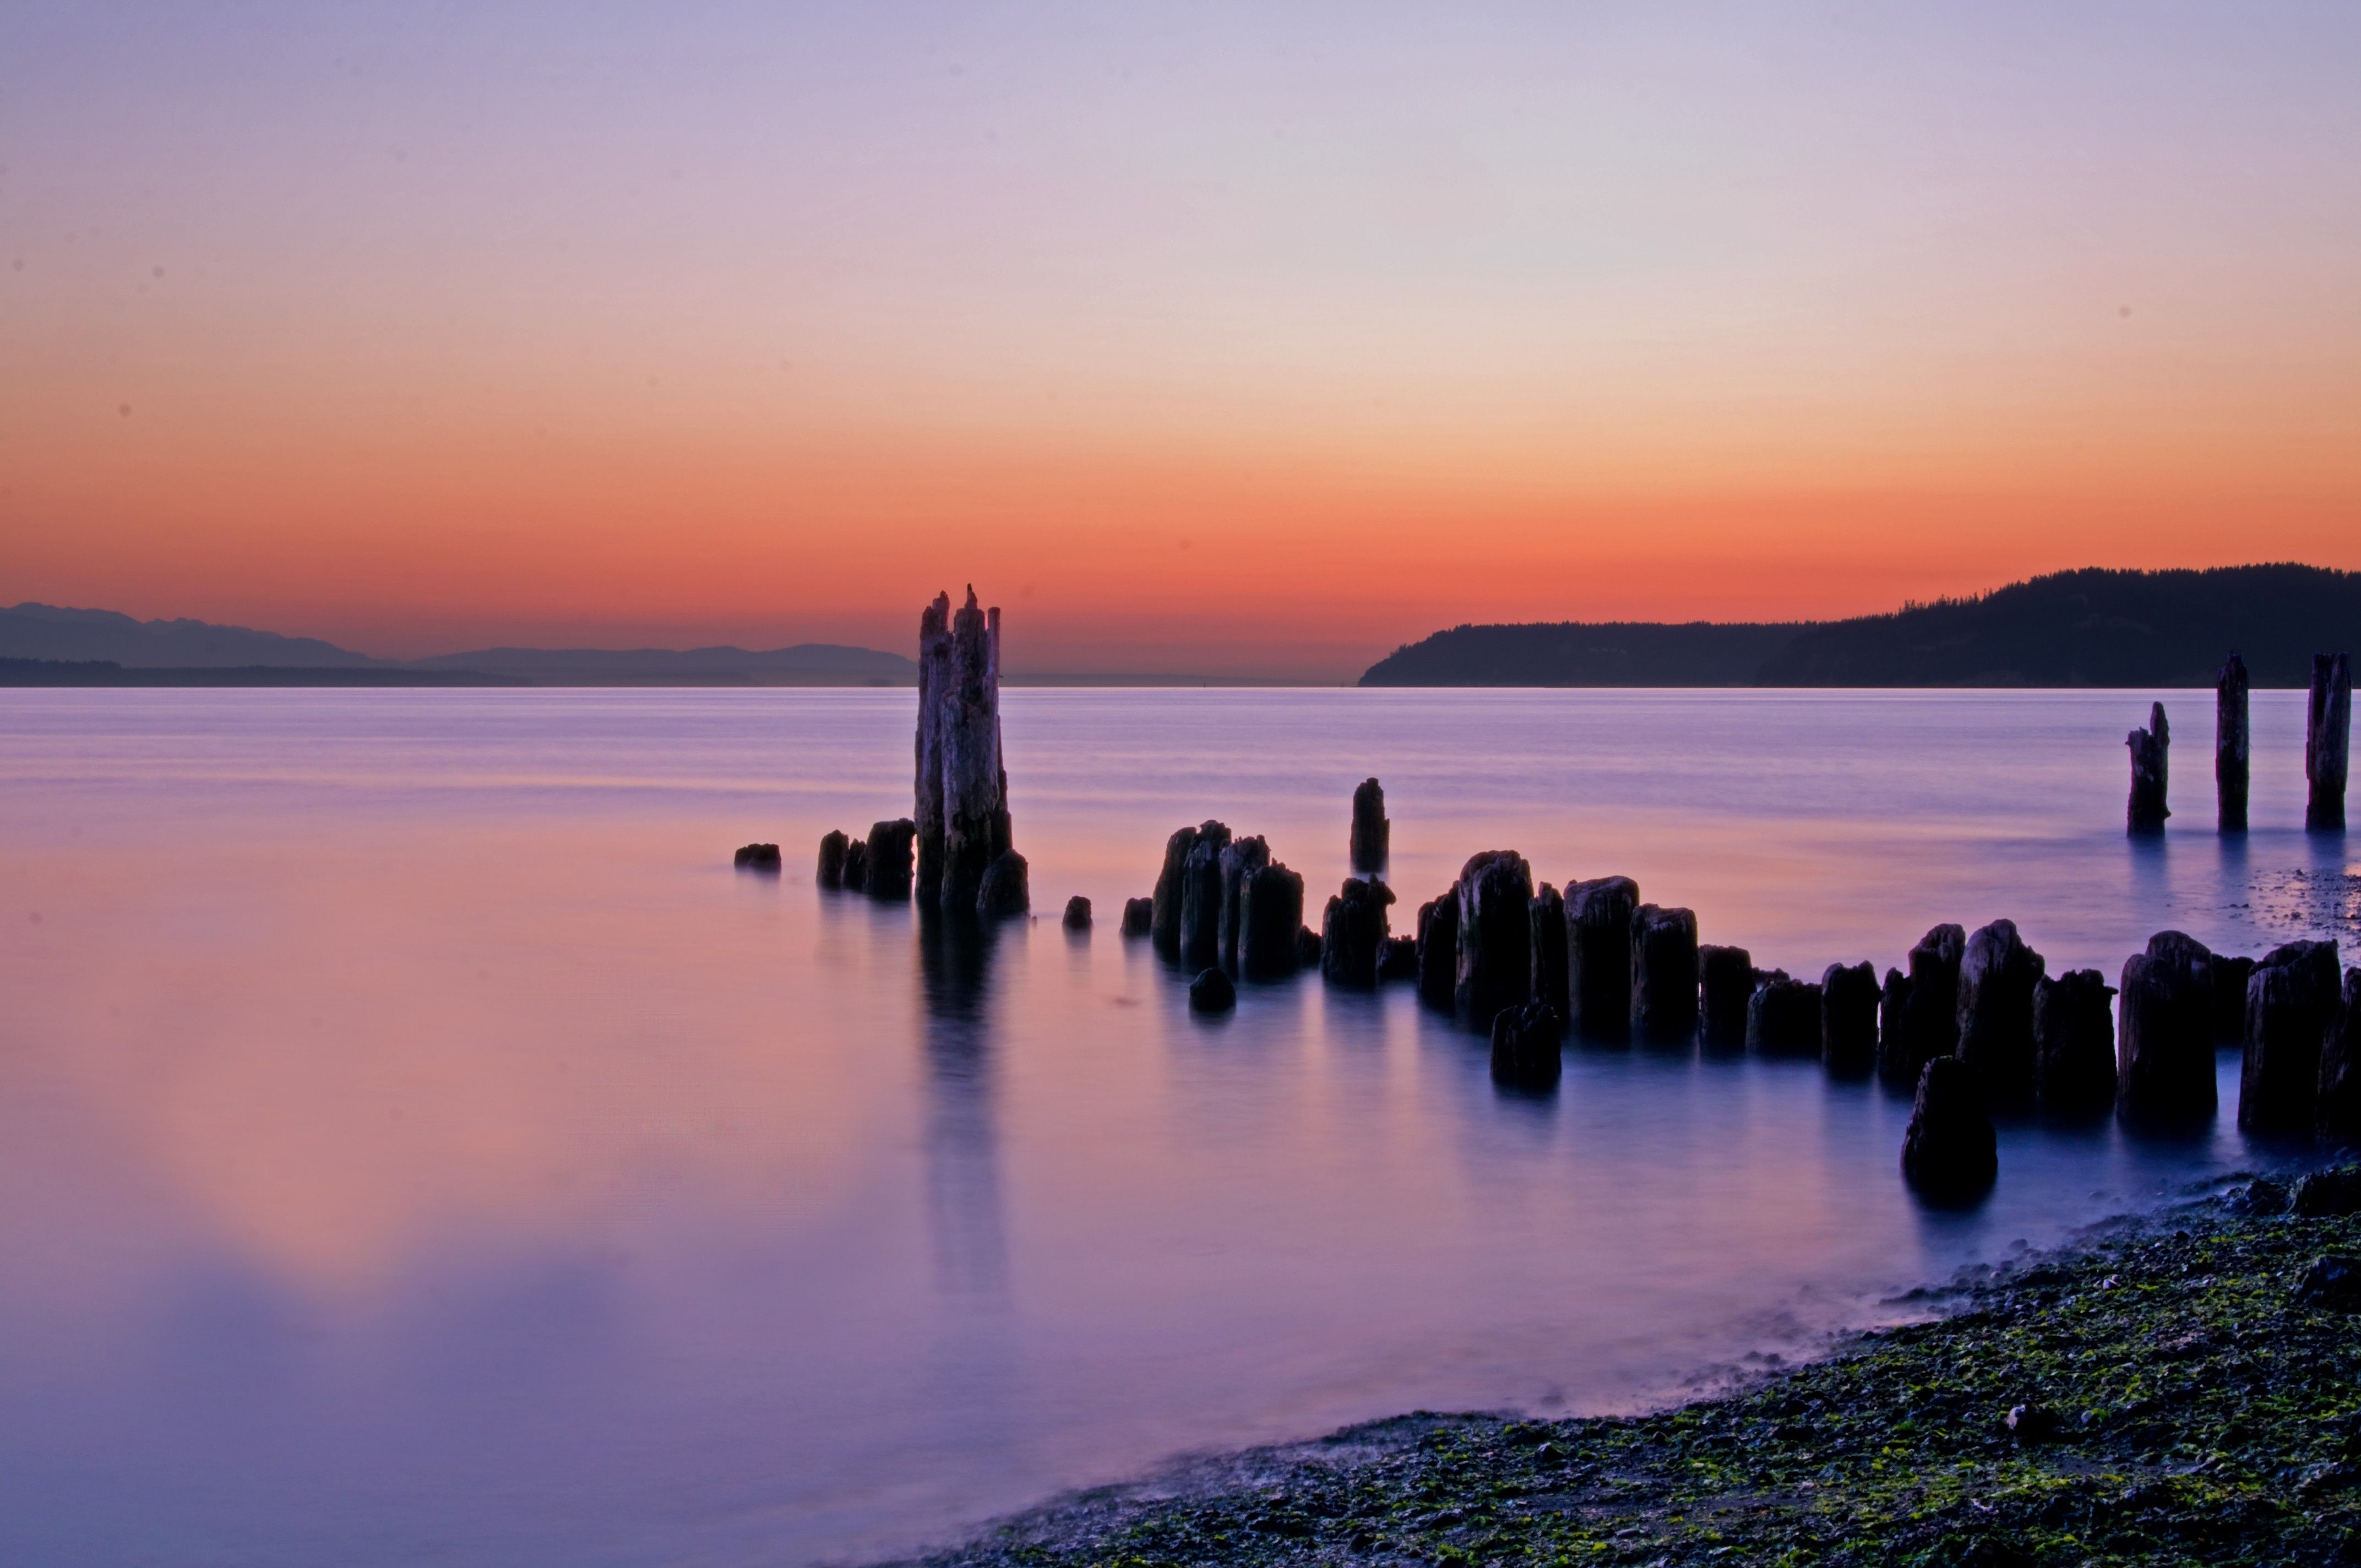 An old pier extends out into the water, with a sunset in the background.